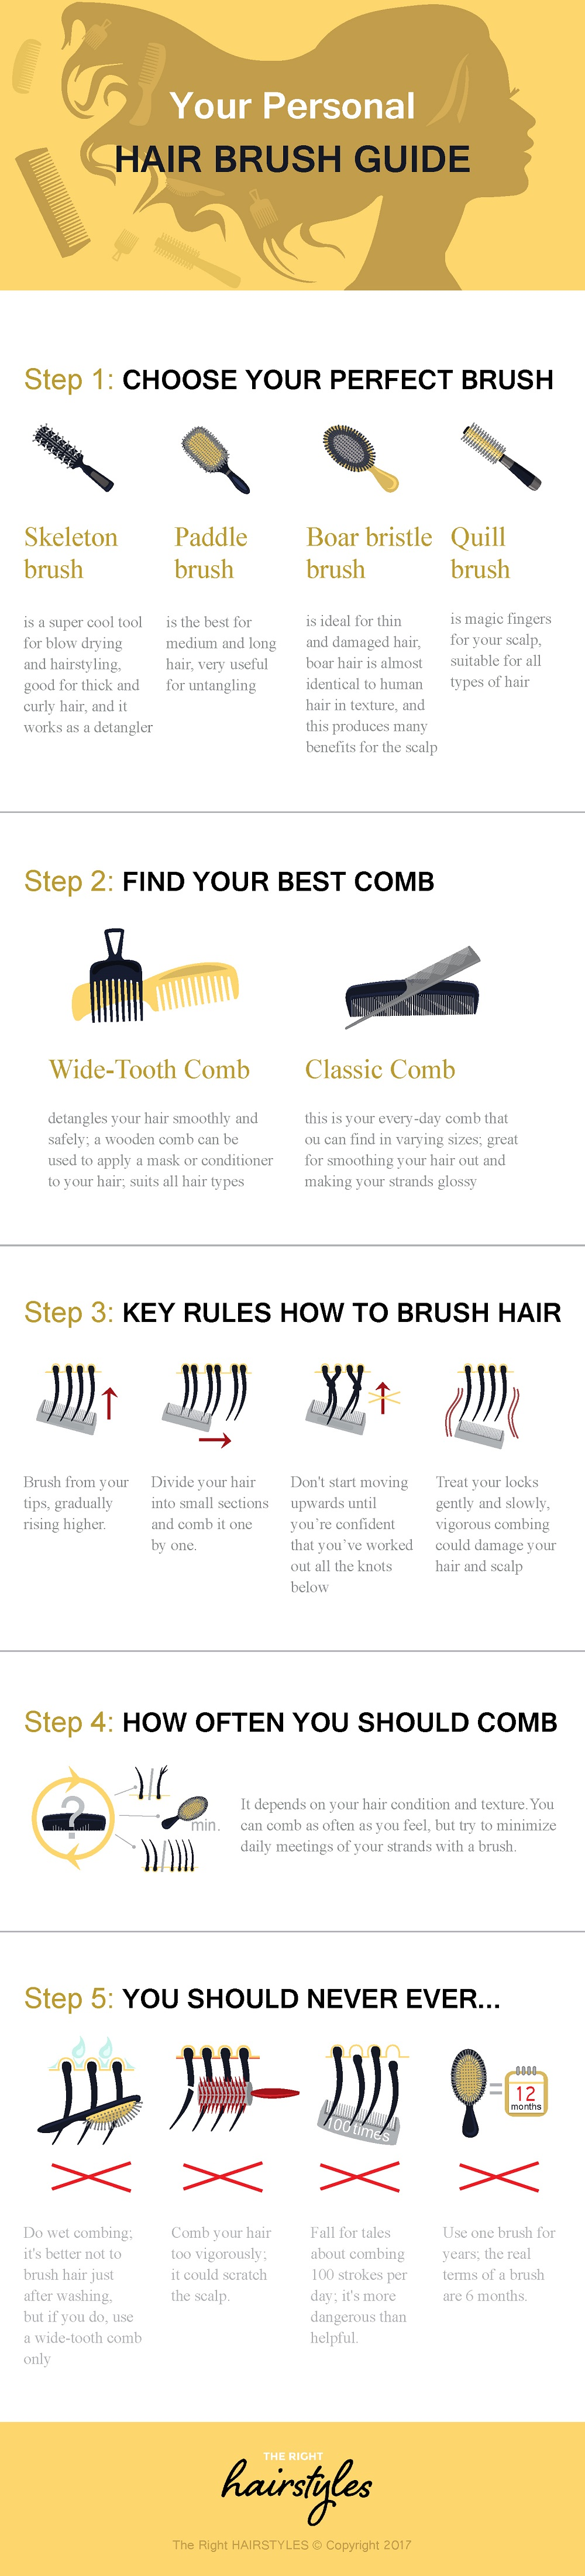 Your Personal Hair Brush Guide - Infographic